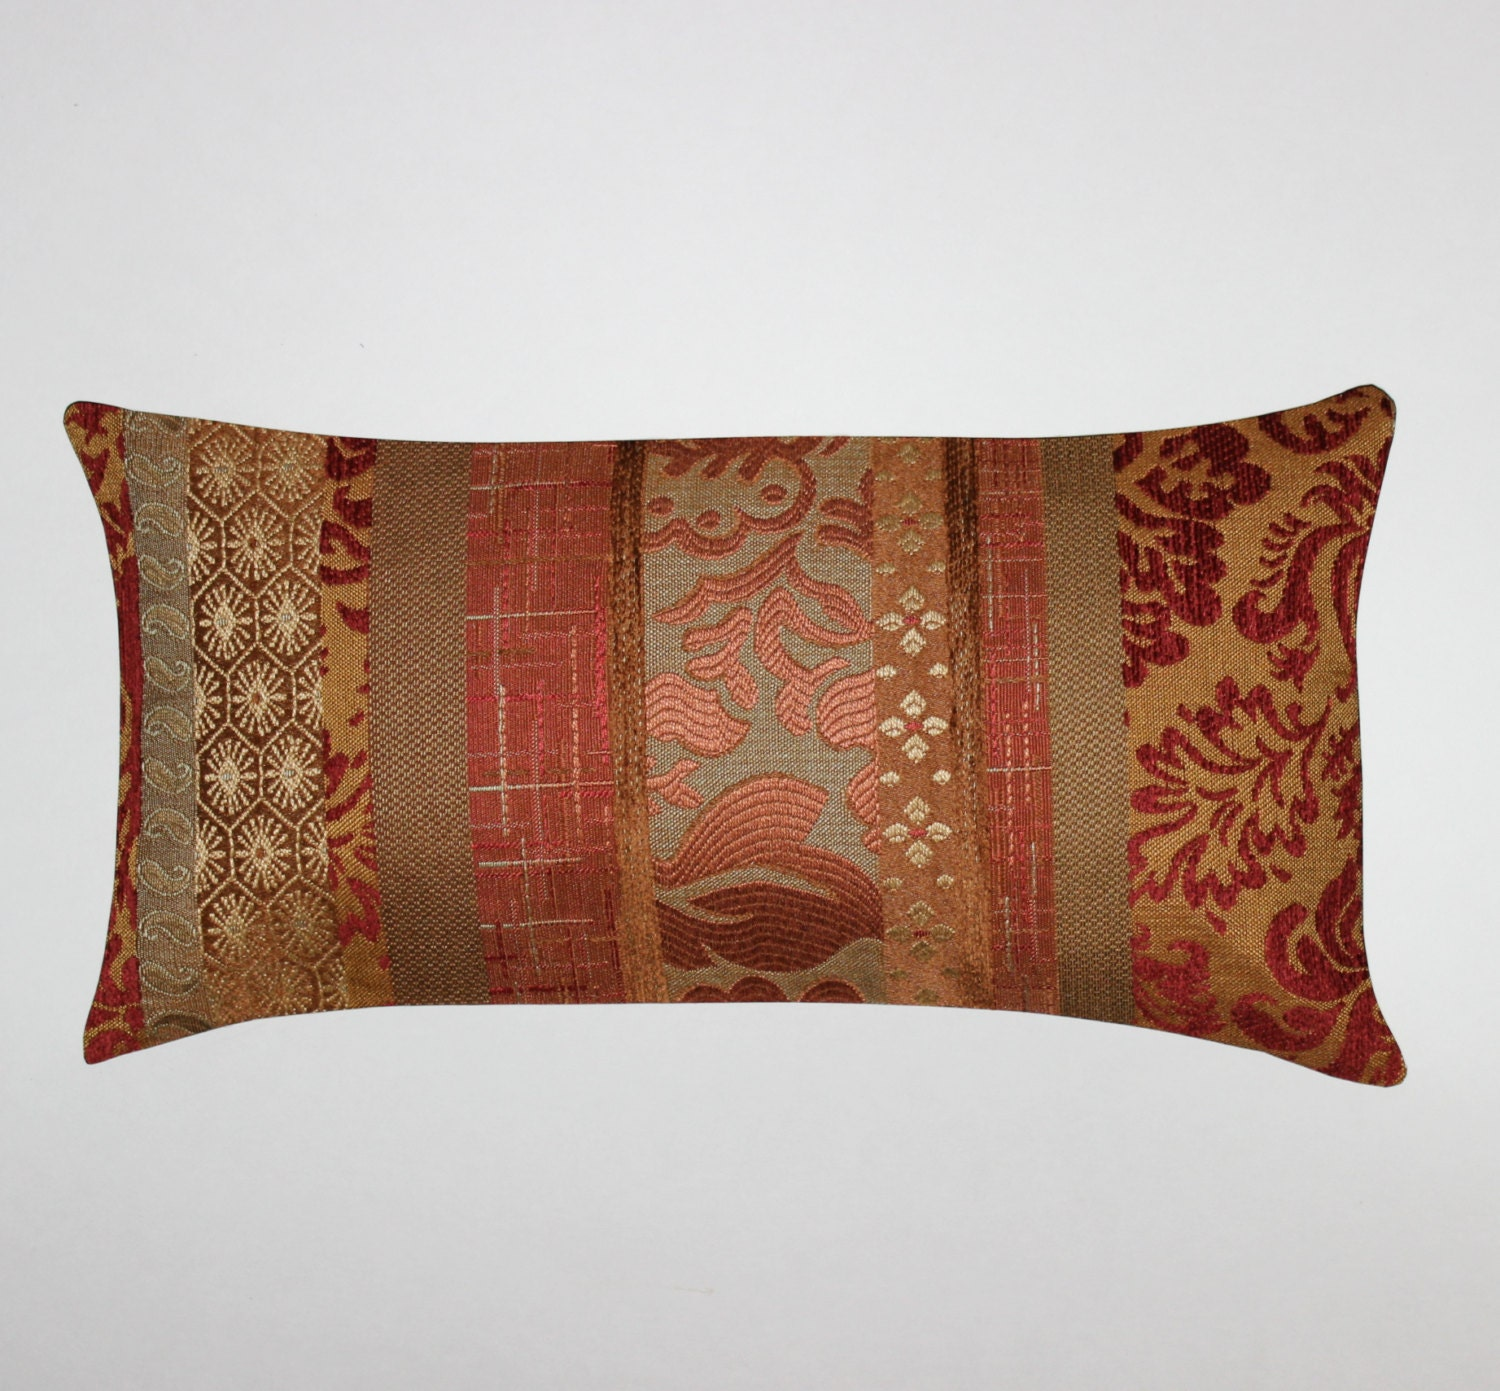 Lumbar Pillow 8x16 Petite Lumbar Rust Pillow